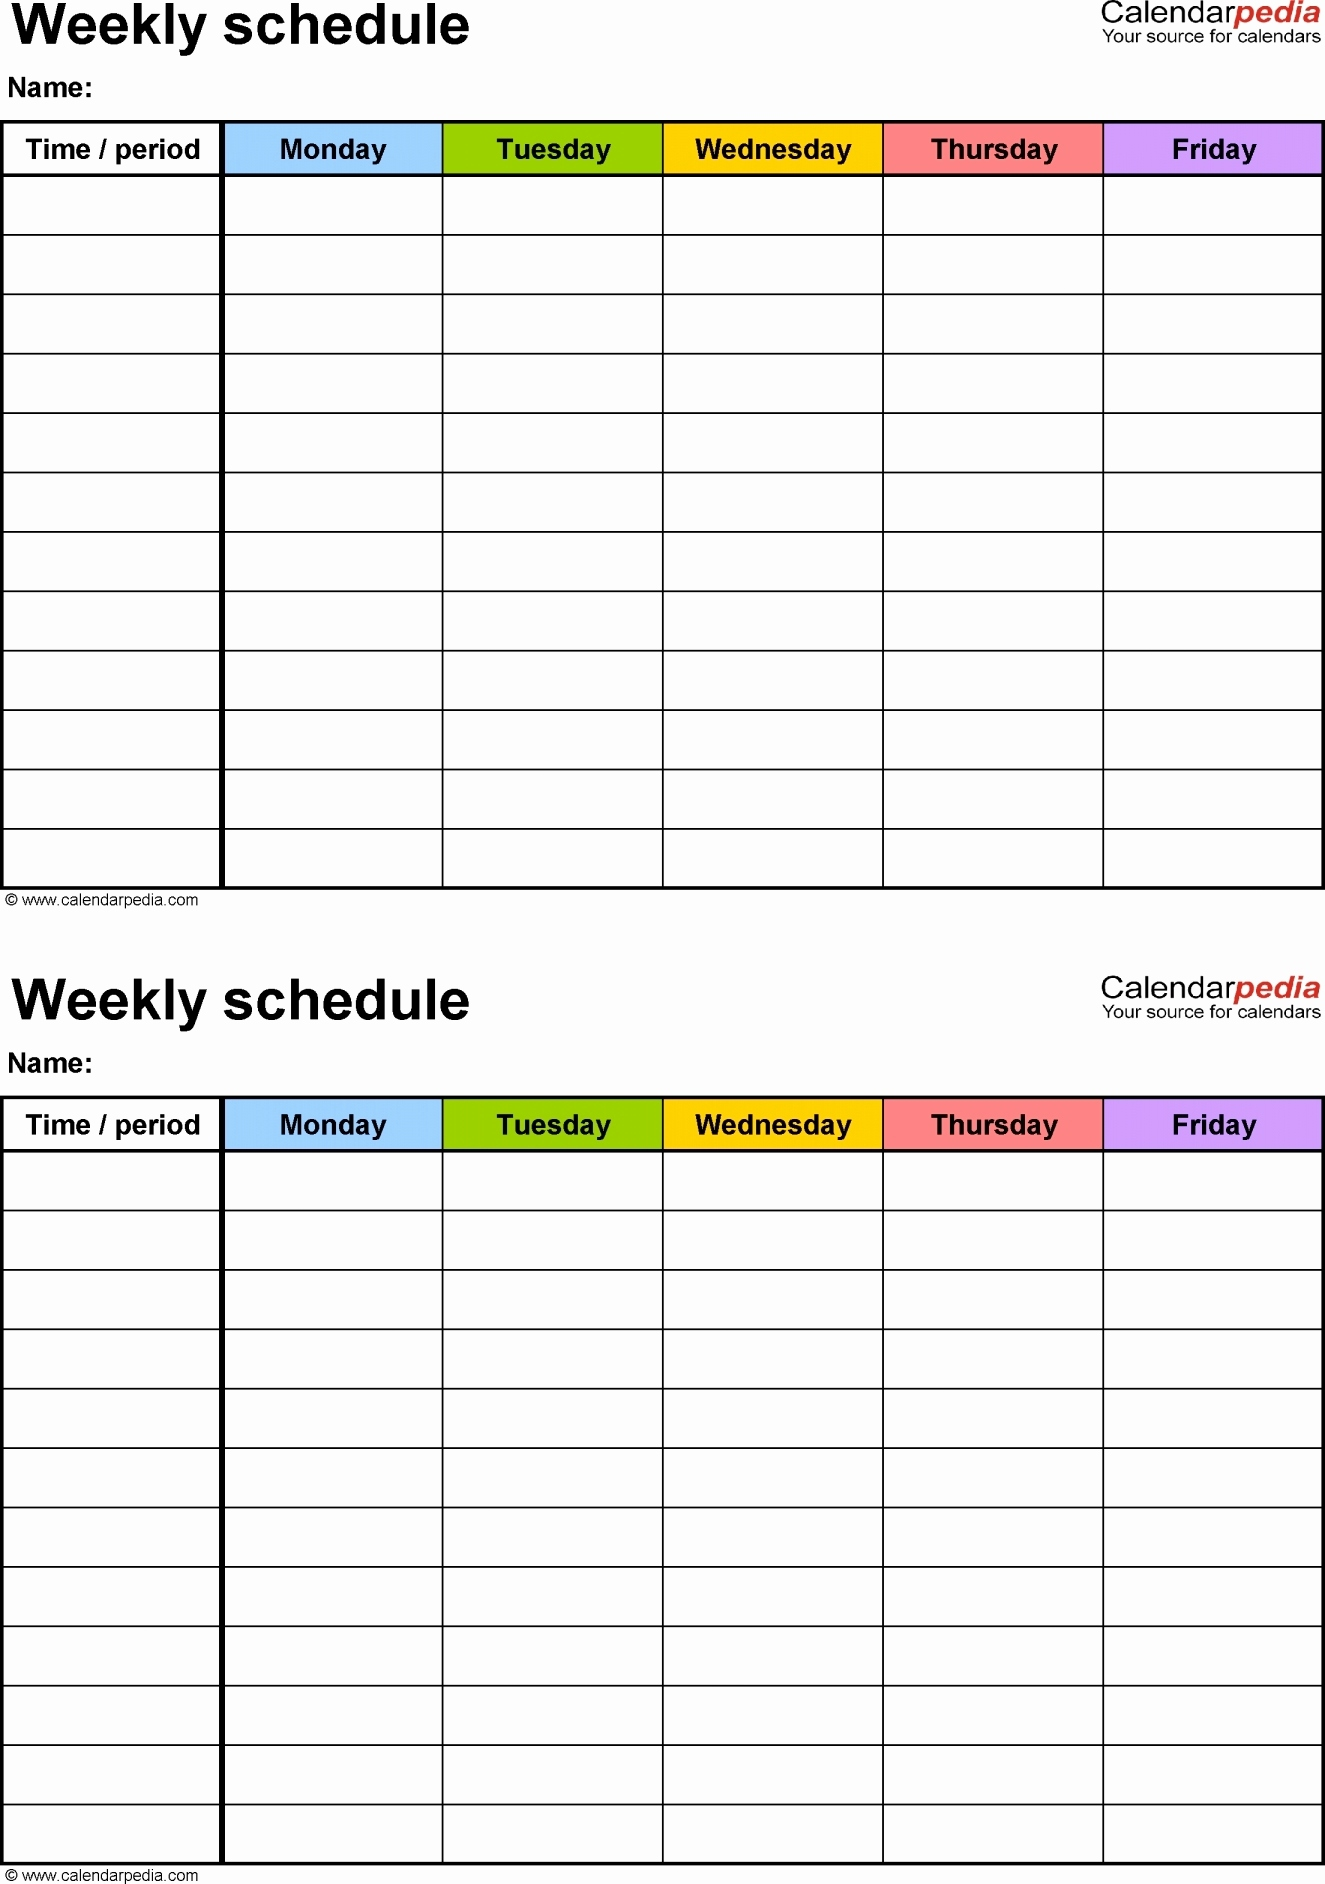 Workback Schedule Excel Template New Schedule Template Google Docs